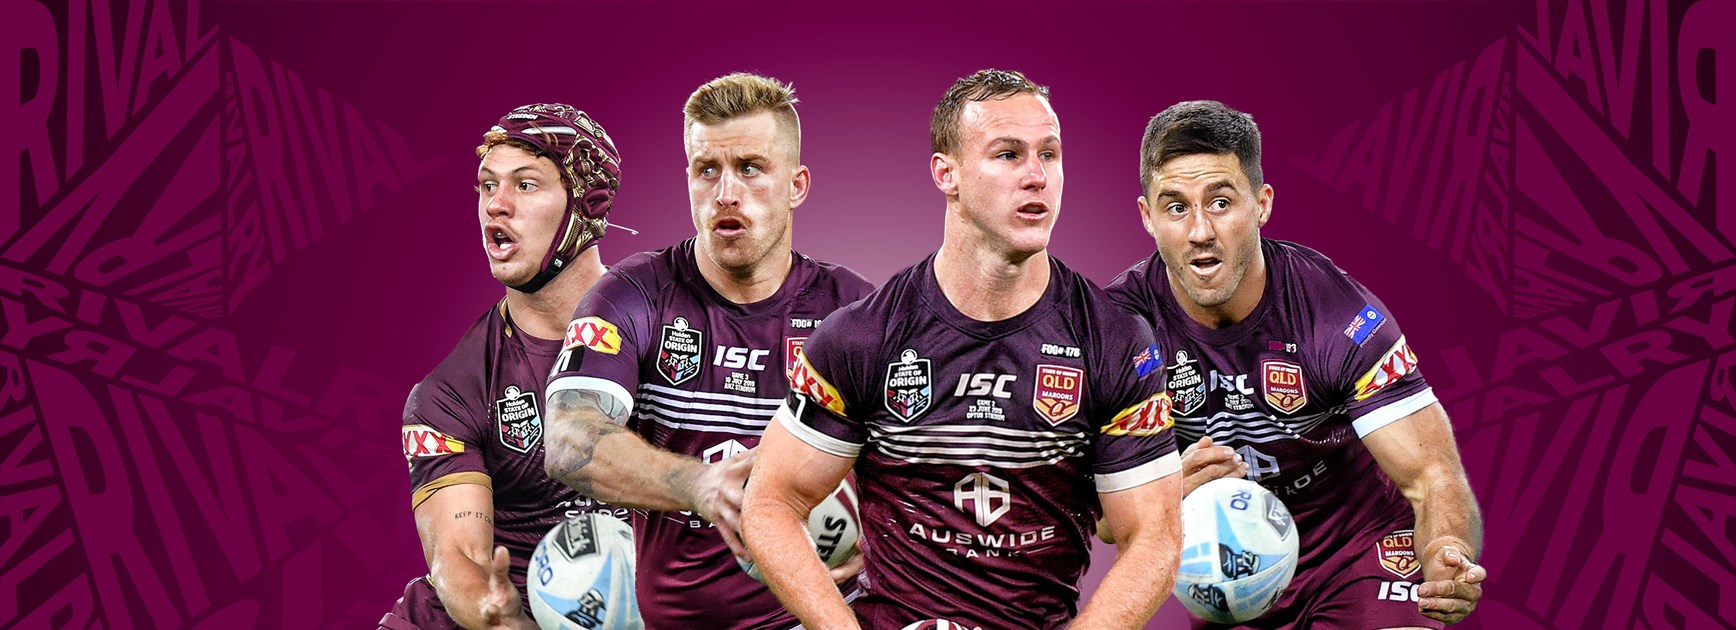 Ranking the Maroons spine candidates for 2020 Origin